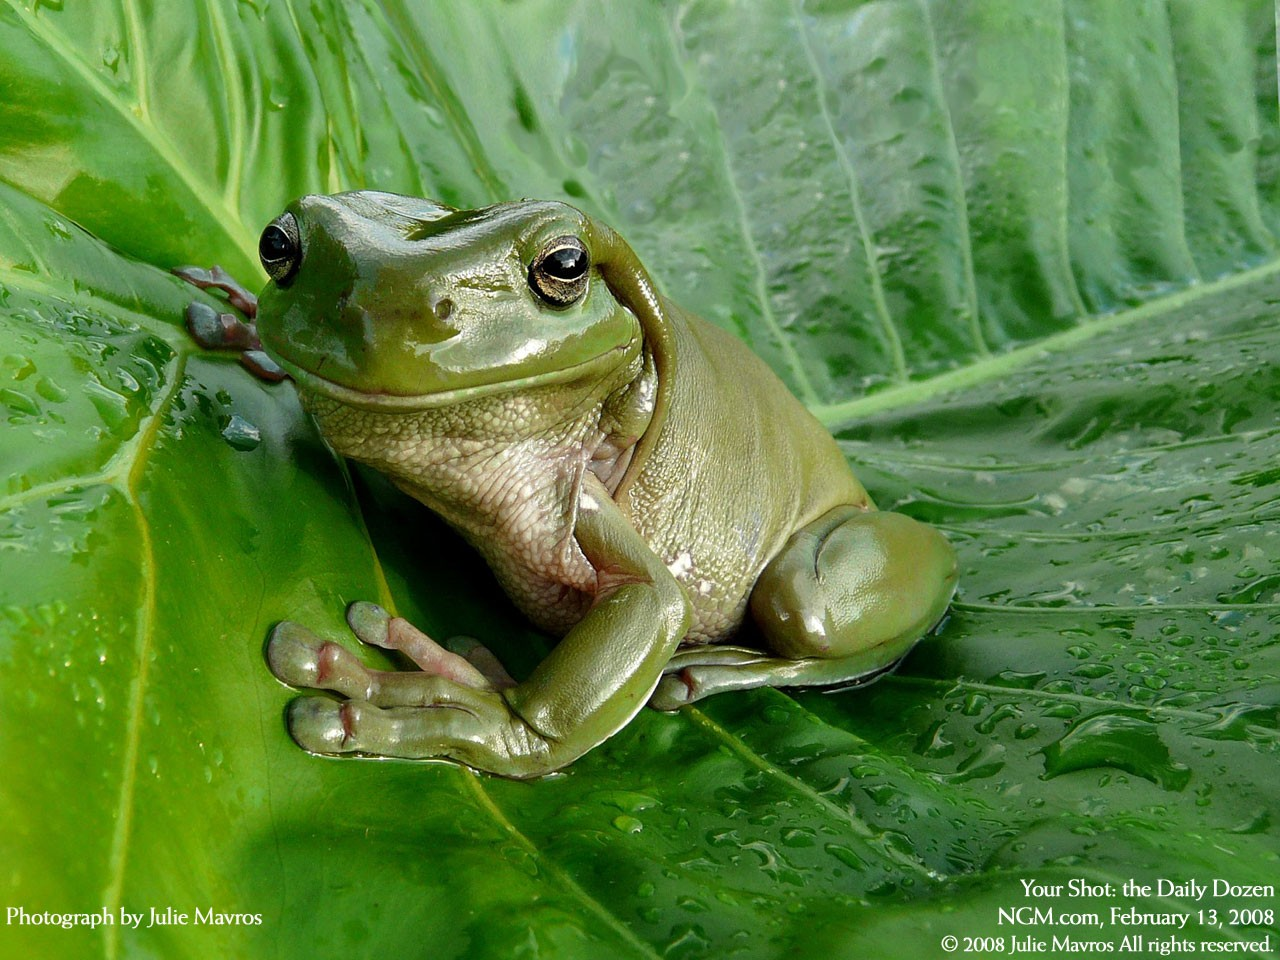 Cute frog Wallpapers   HD Wallpapers 24852 1280x960